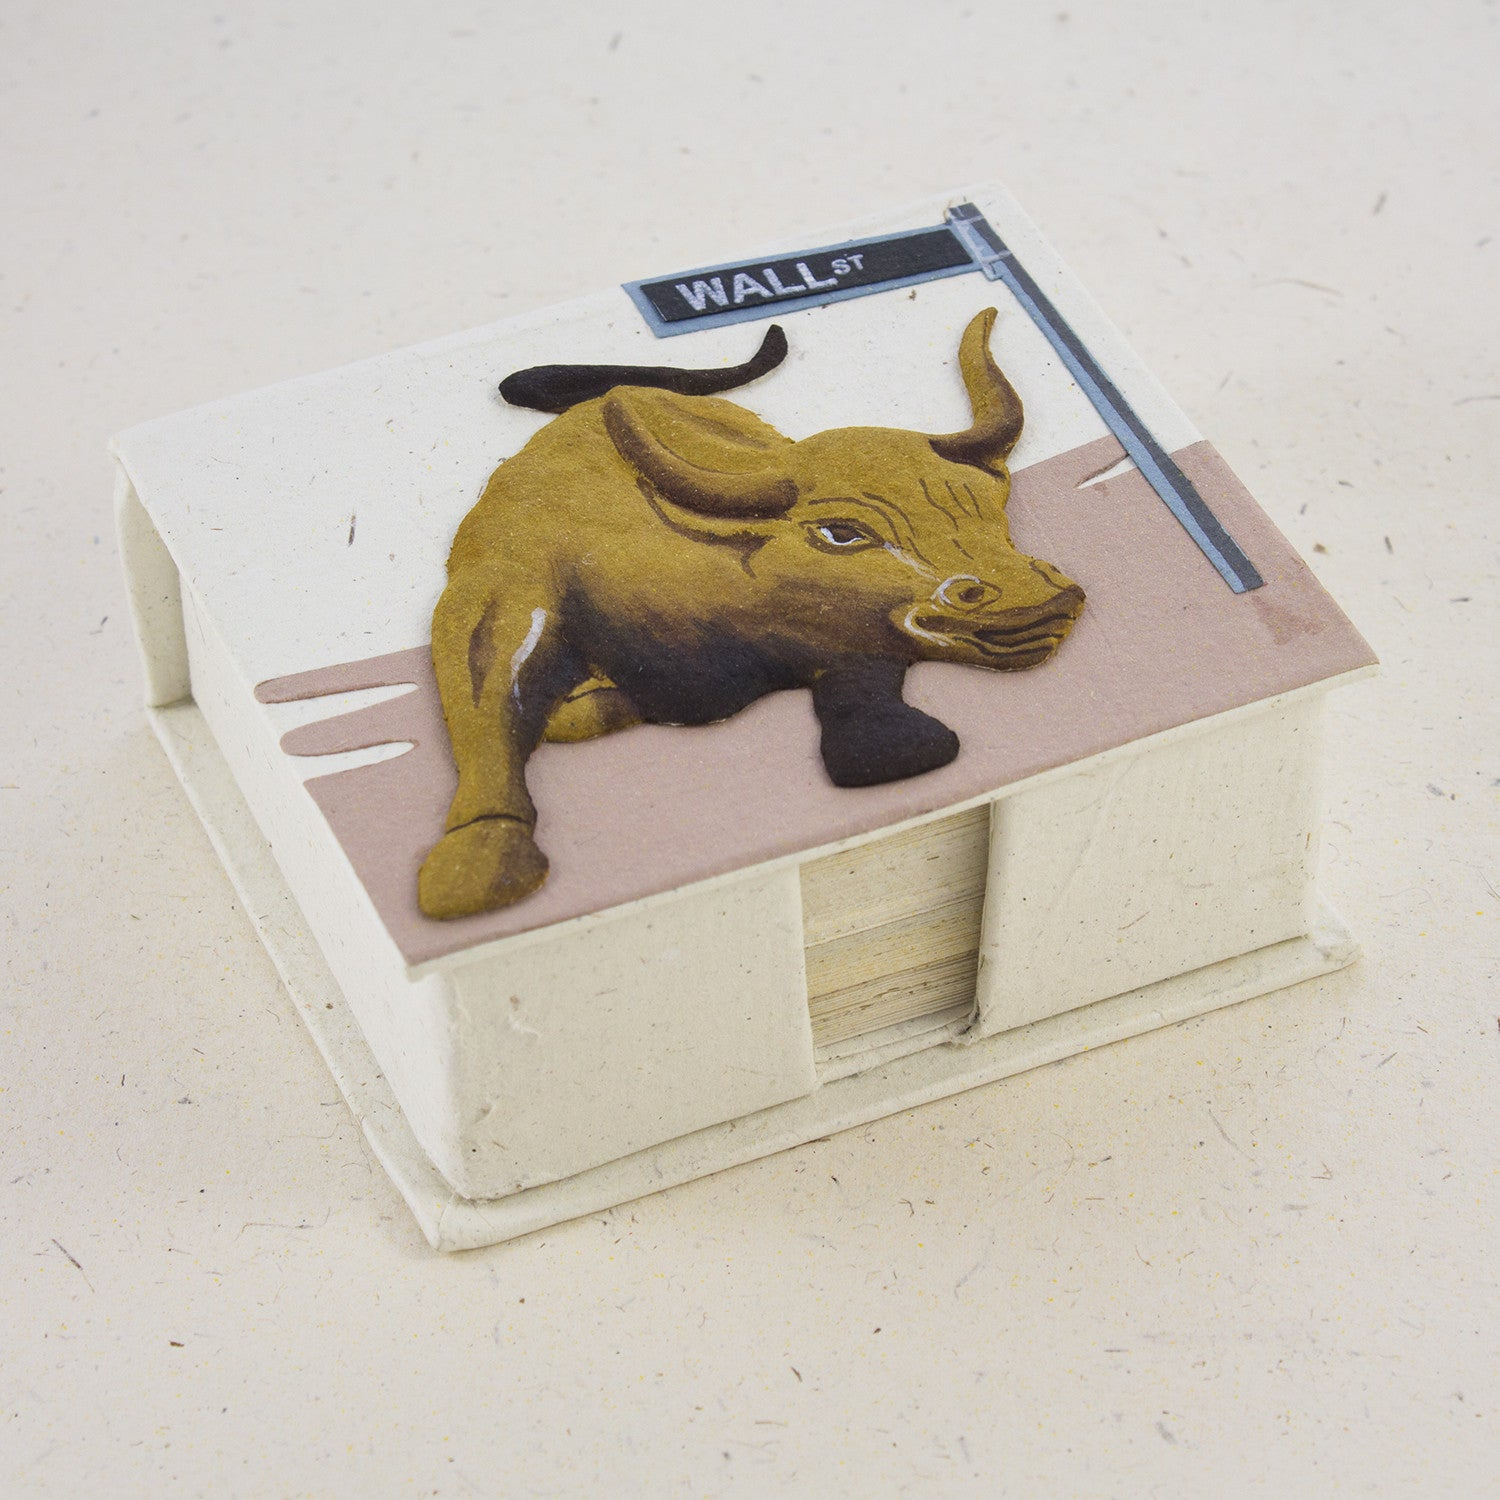 Wall Street Gifts Mrellie Pooh • Handmade Fair Trade Gifts • Note Box Wall Street